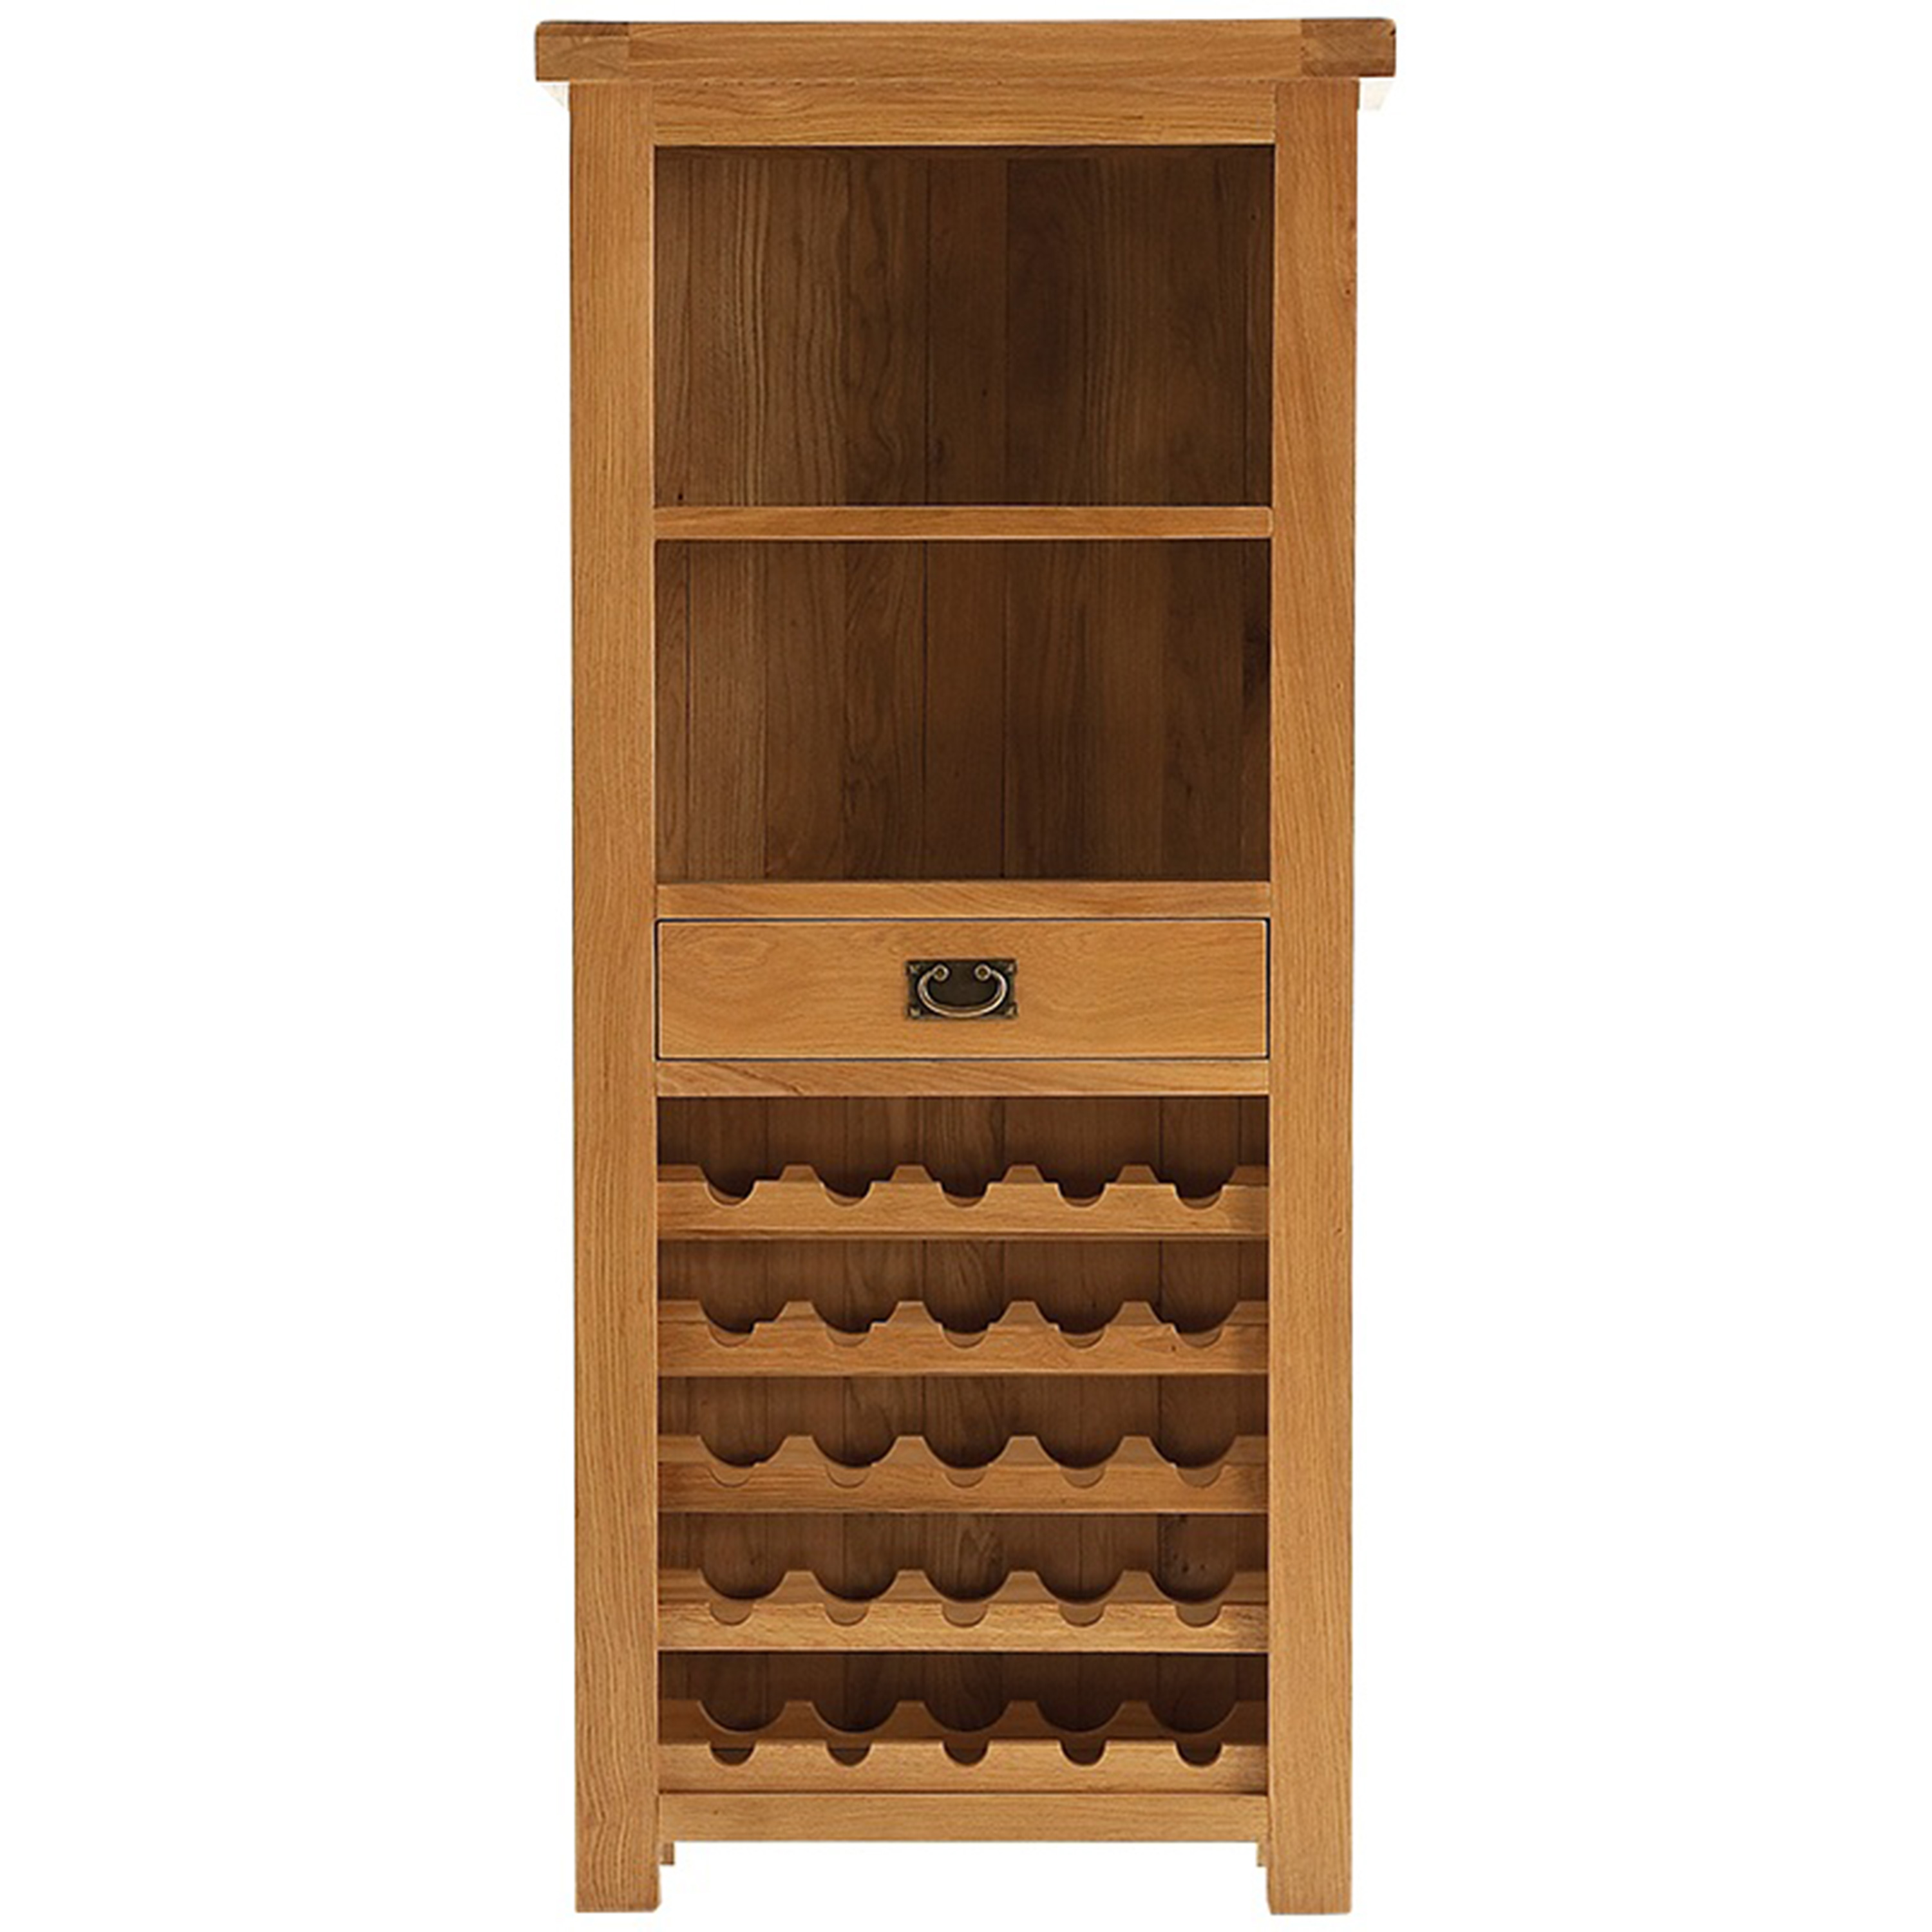 Image of Cirencester Wine Rack Cabinet